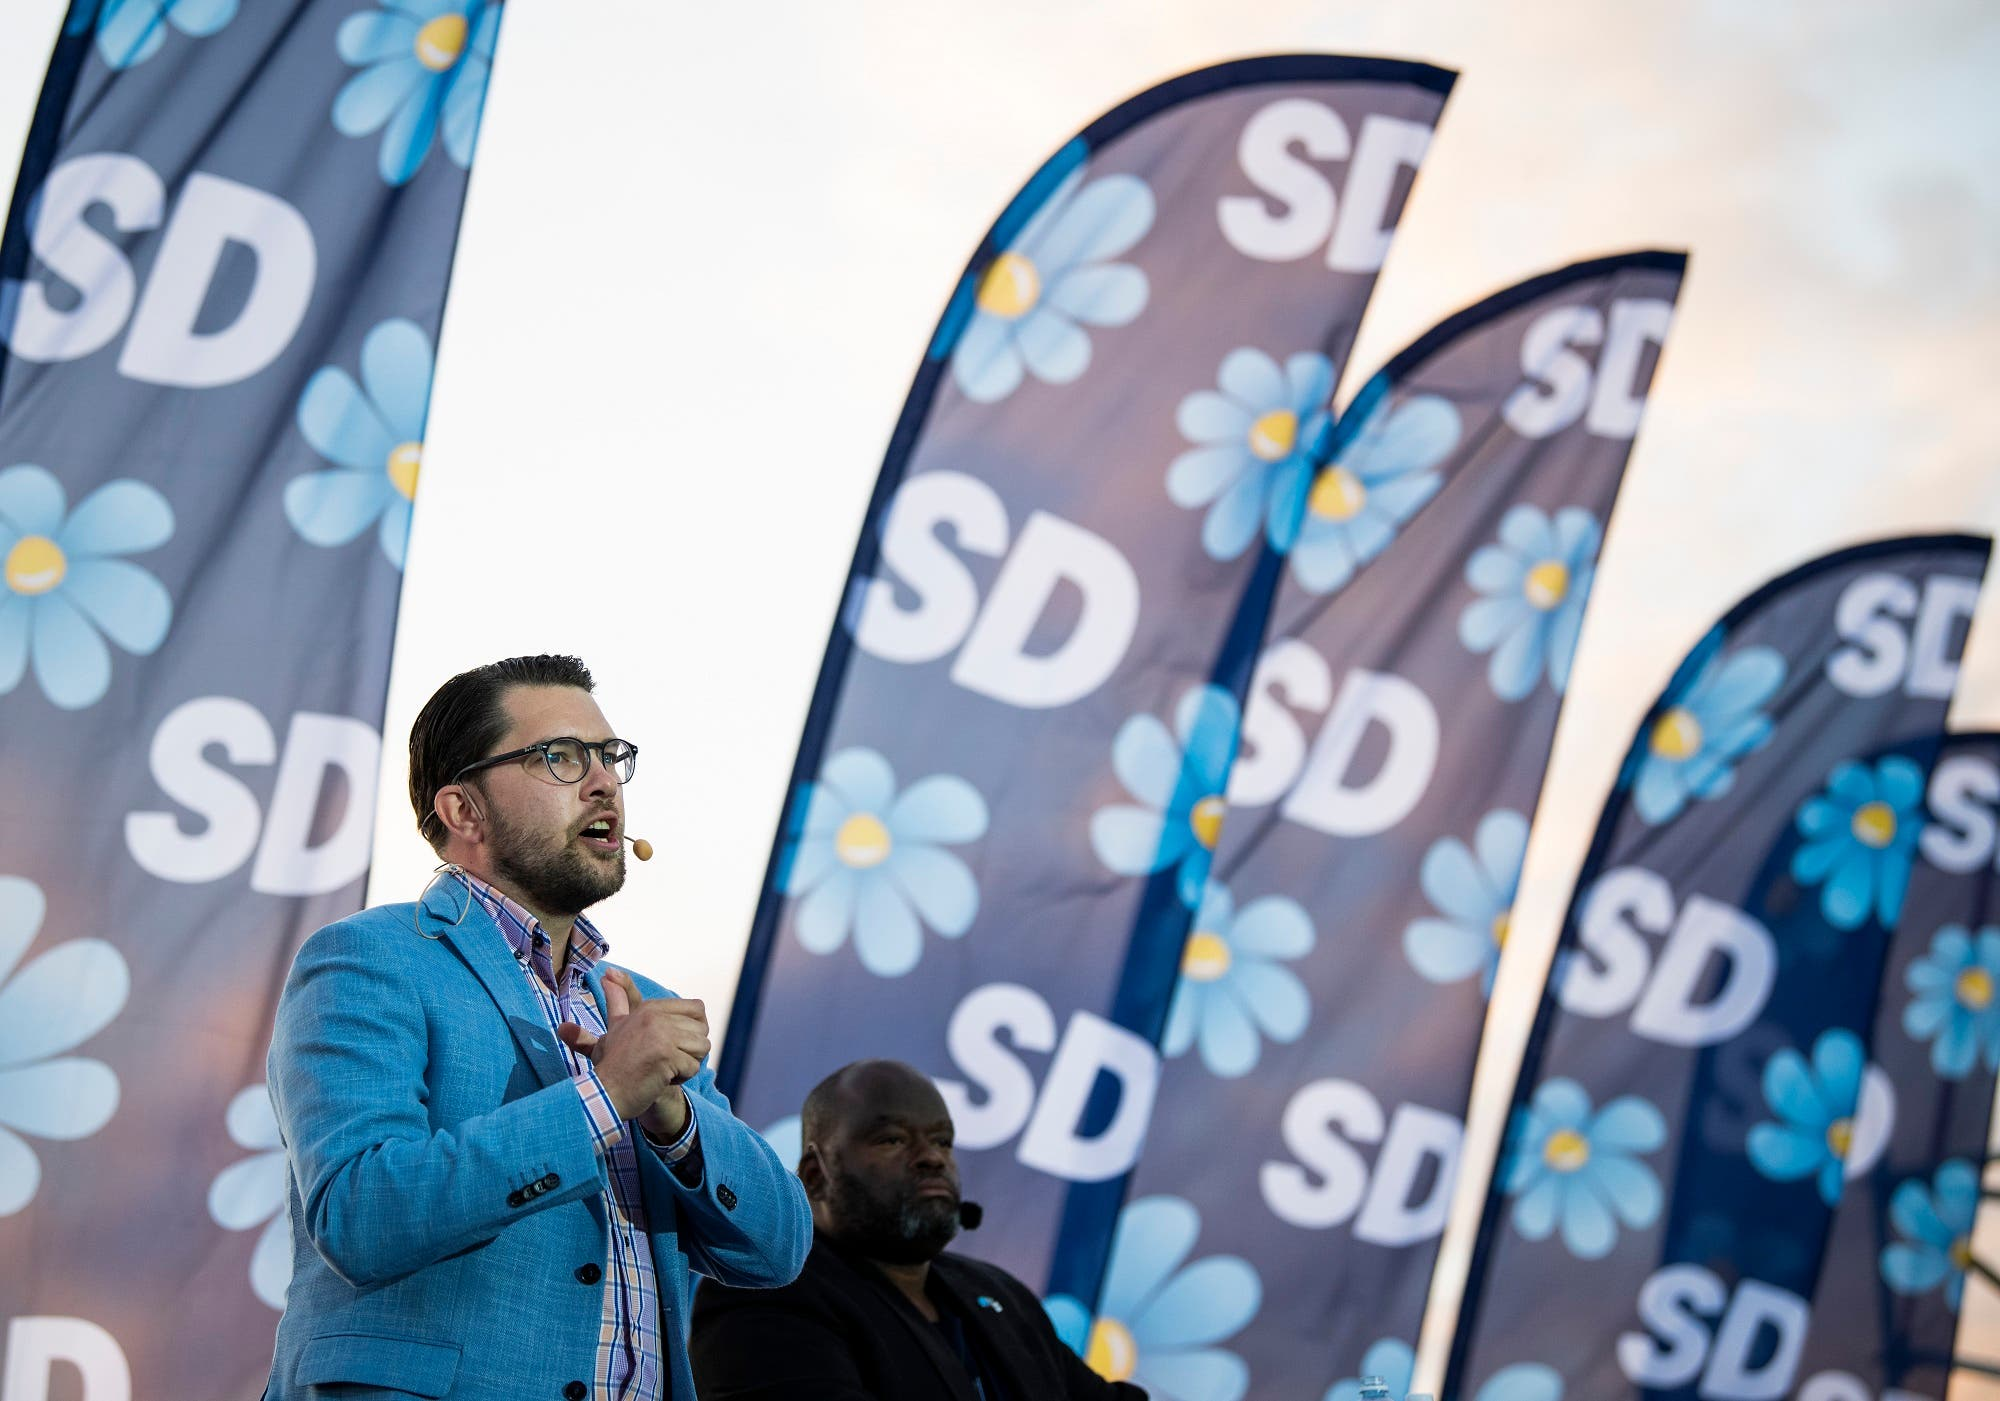 The party leader of the far-right Sweden Democrats, Jimmie Akesson, gives a speech during a campaign meeting in Stockholm on September 8, 2018. (AFP)